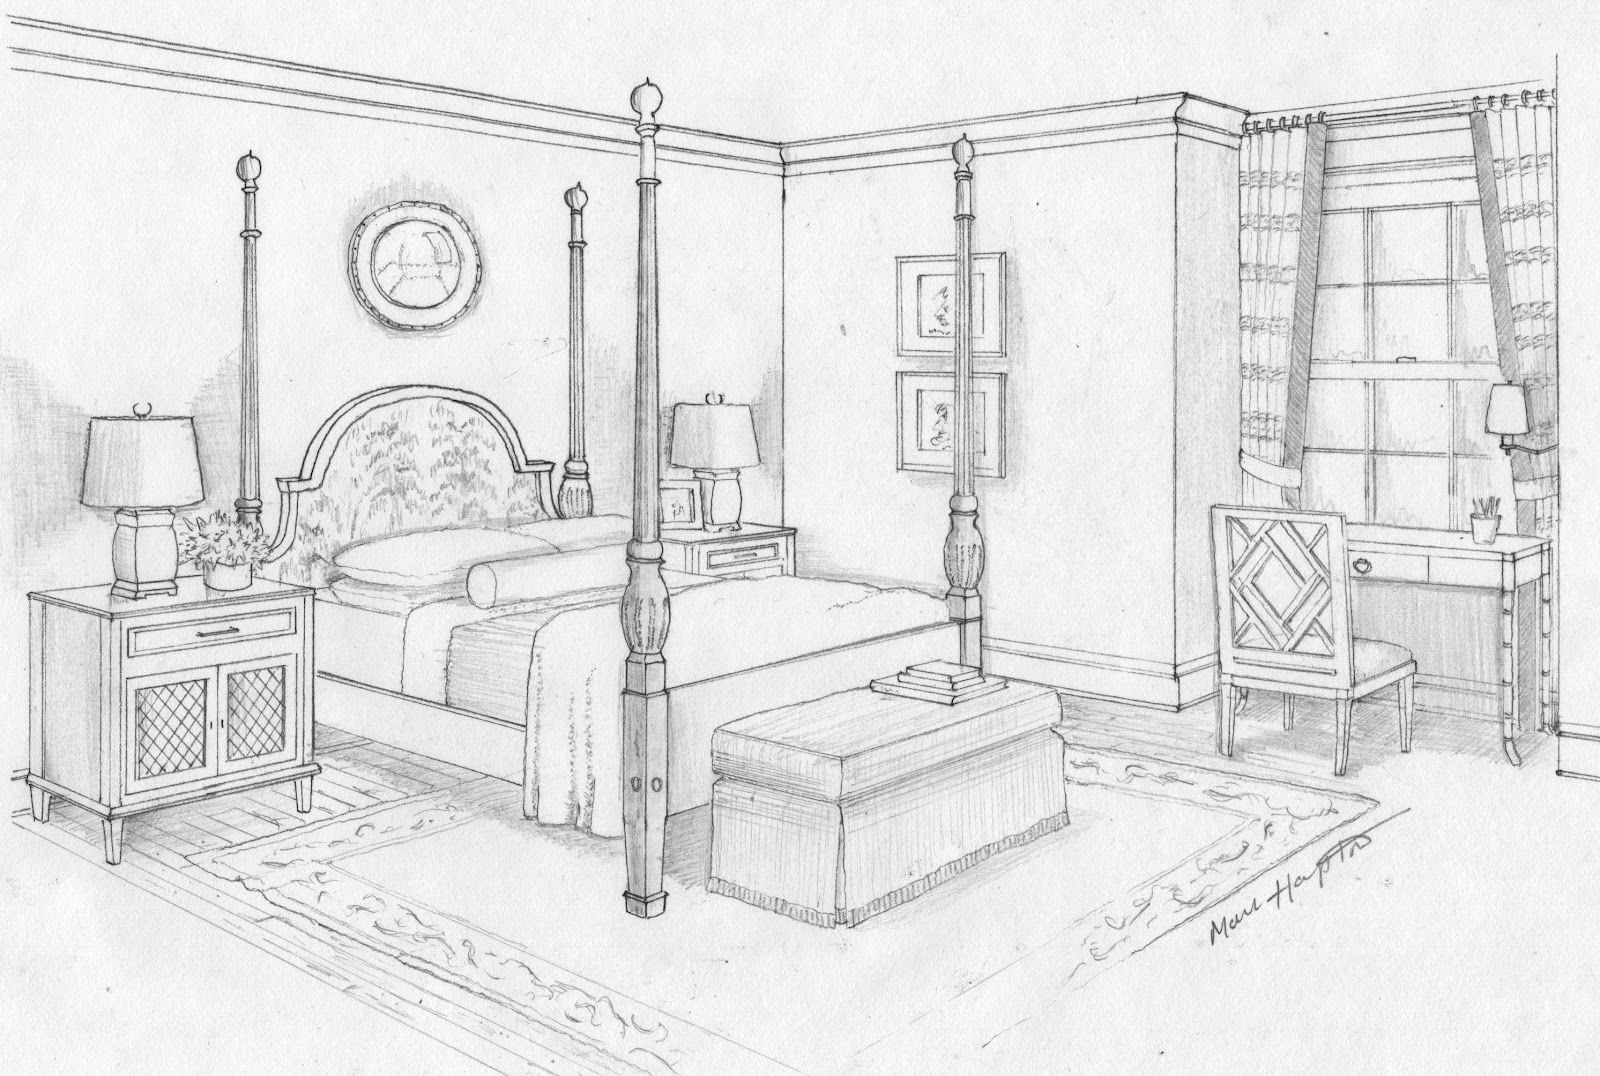 dream bedroom sketch bedroom ideas pictures art ForBedroom Designs Sketch